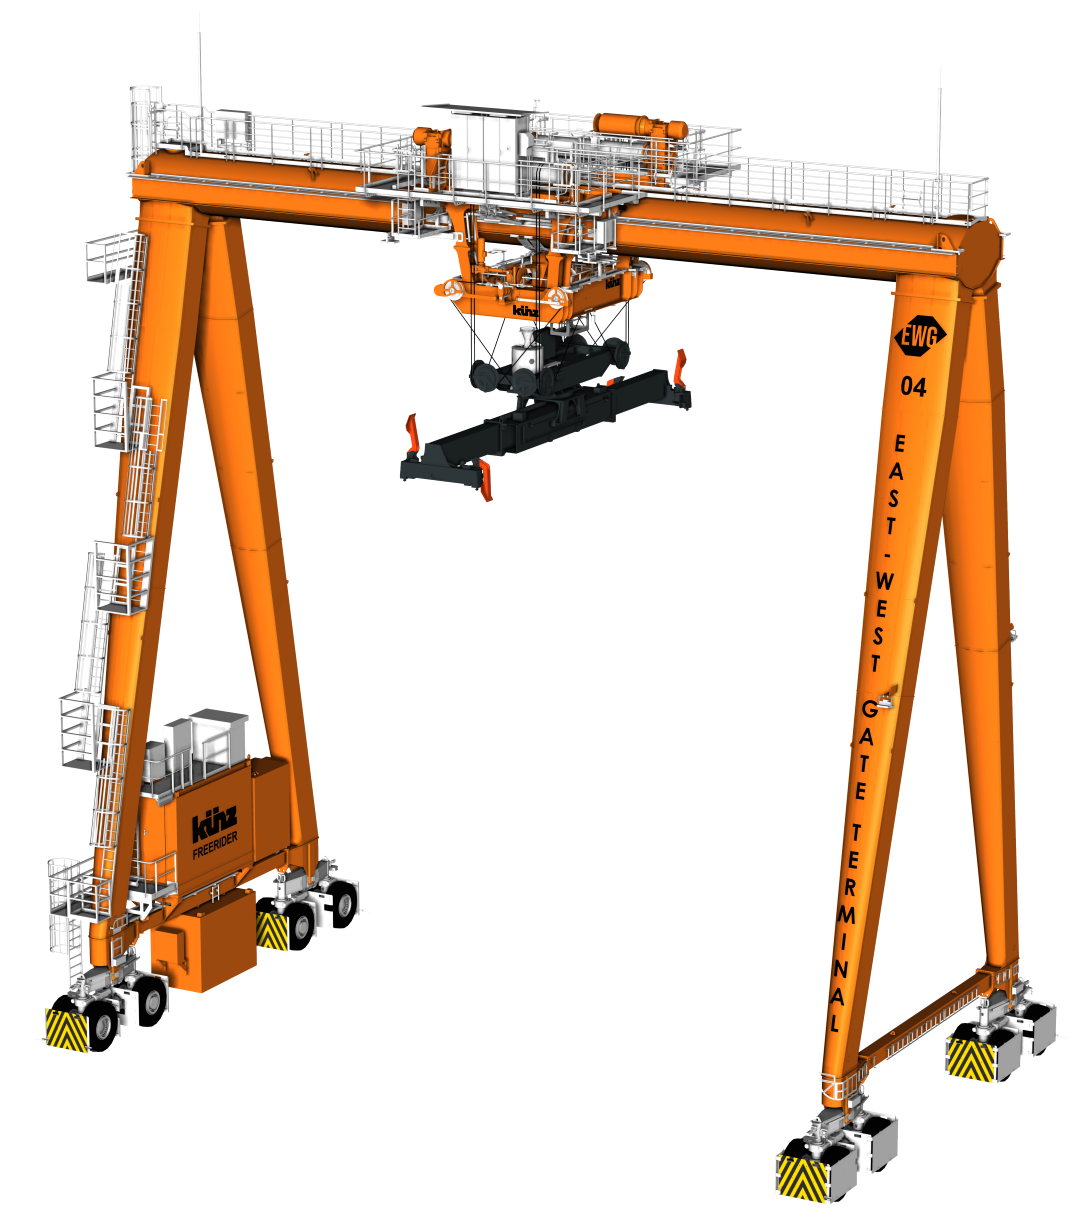 Kuenz to install 5G-controlled intermodal cranes at new EWG terminal in Hungary